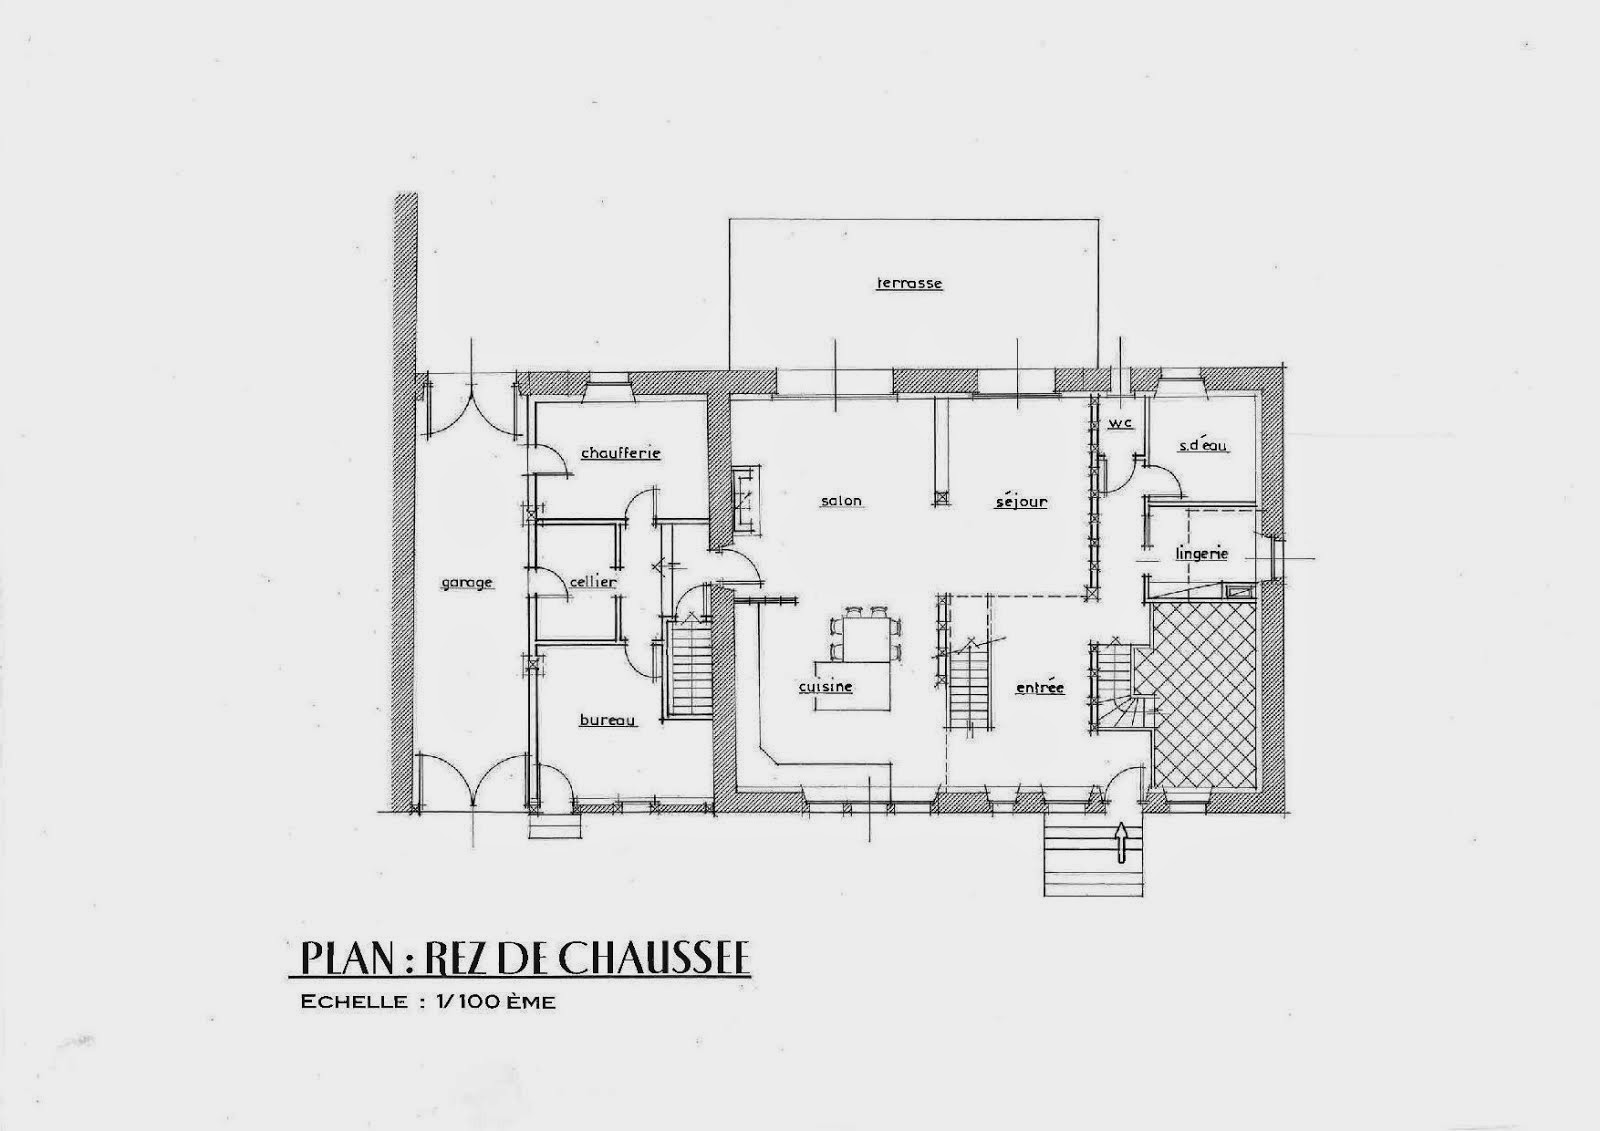 Plan de renovation maison ancienne for Plan ancienne maison